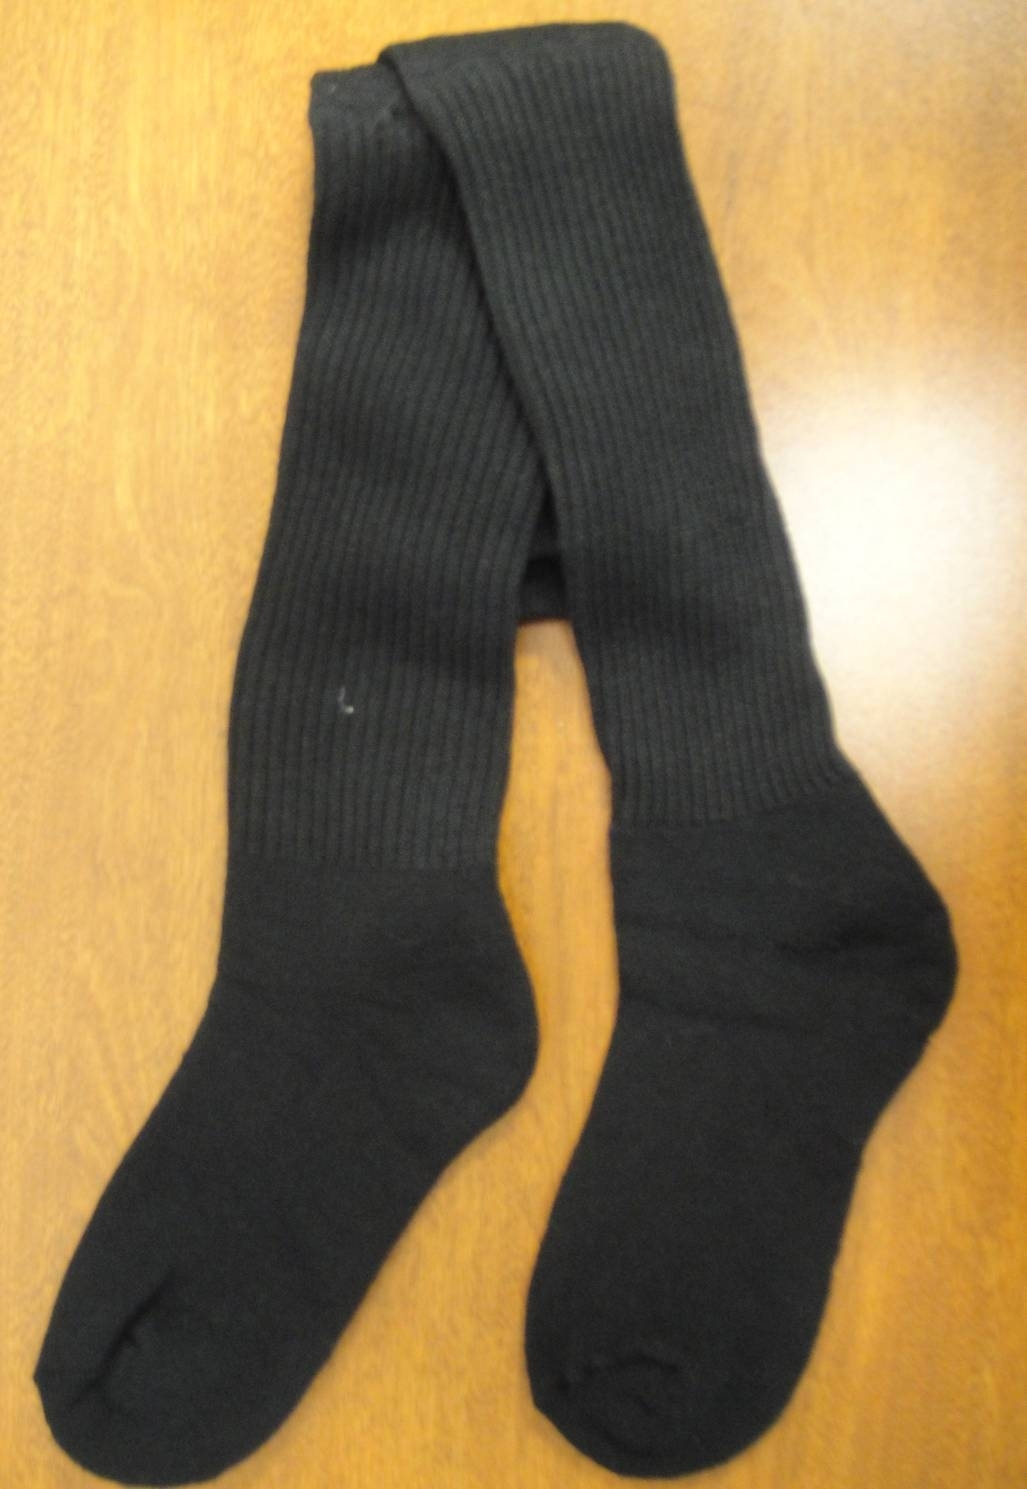 AF HEMA Black Socks (Knee High)